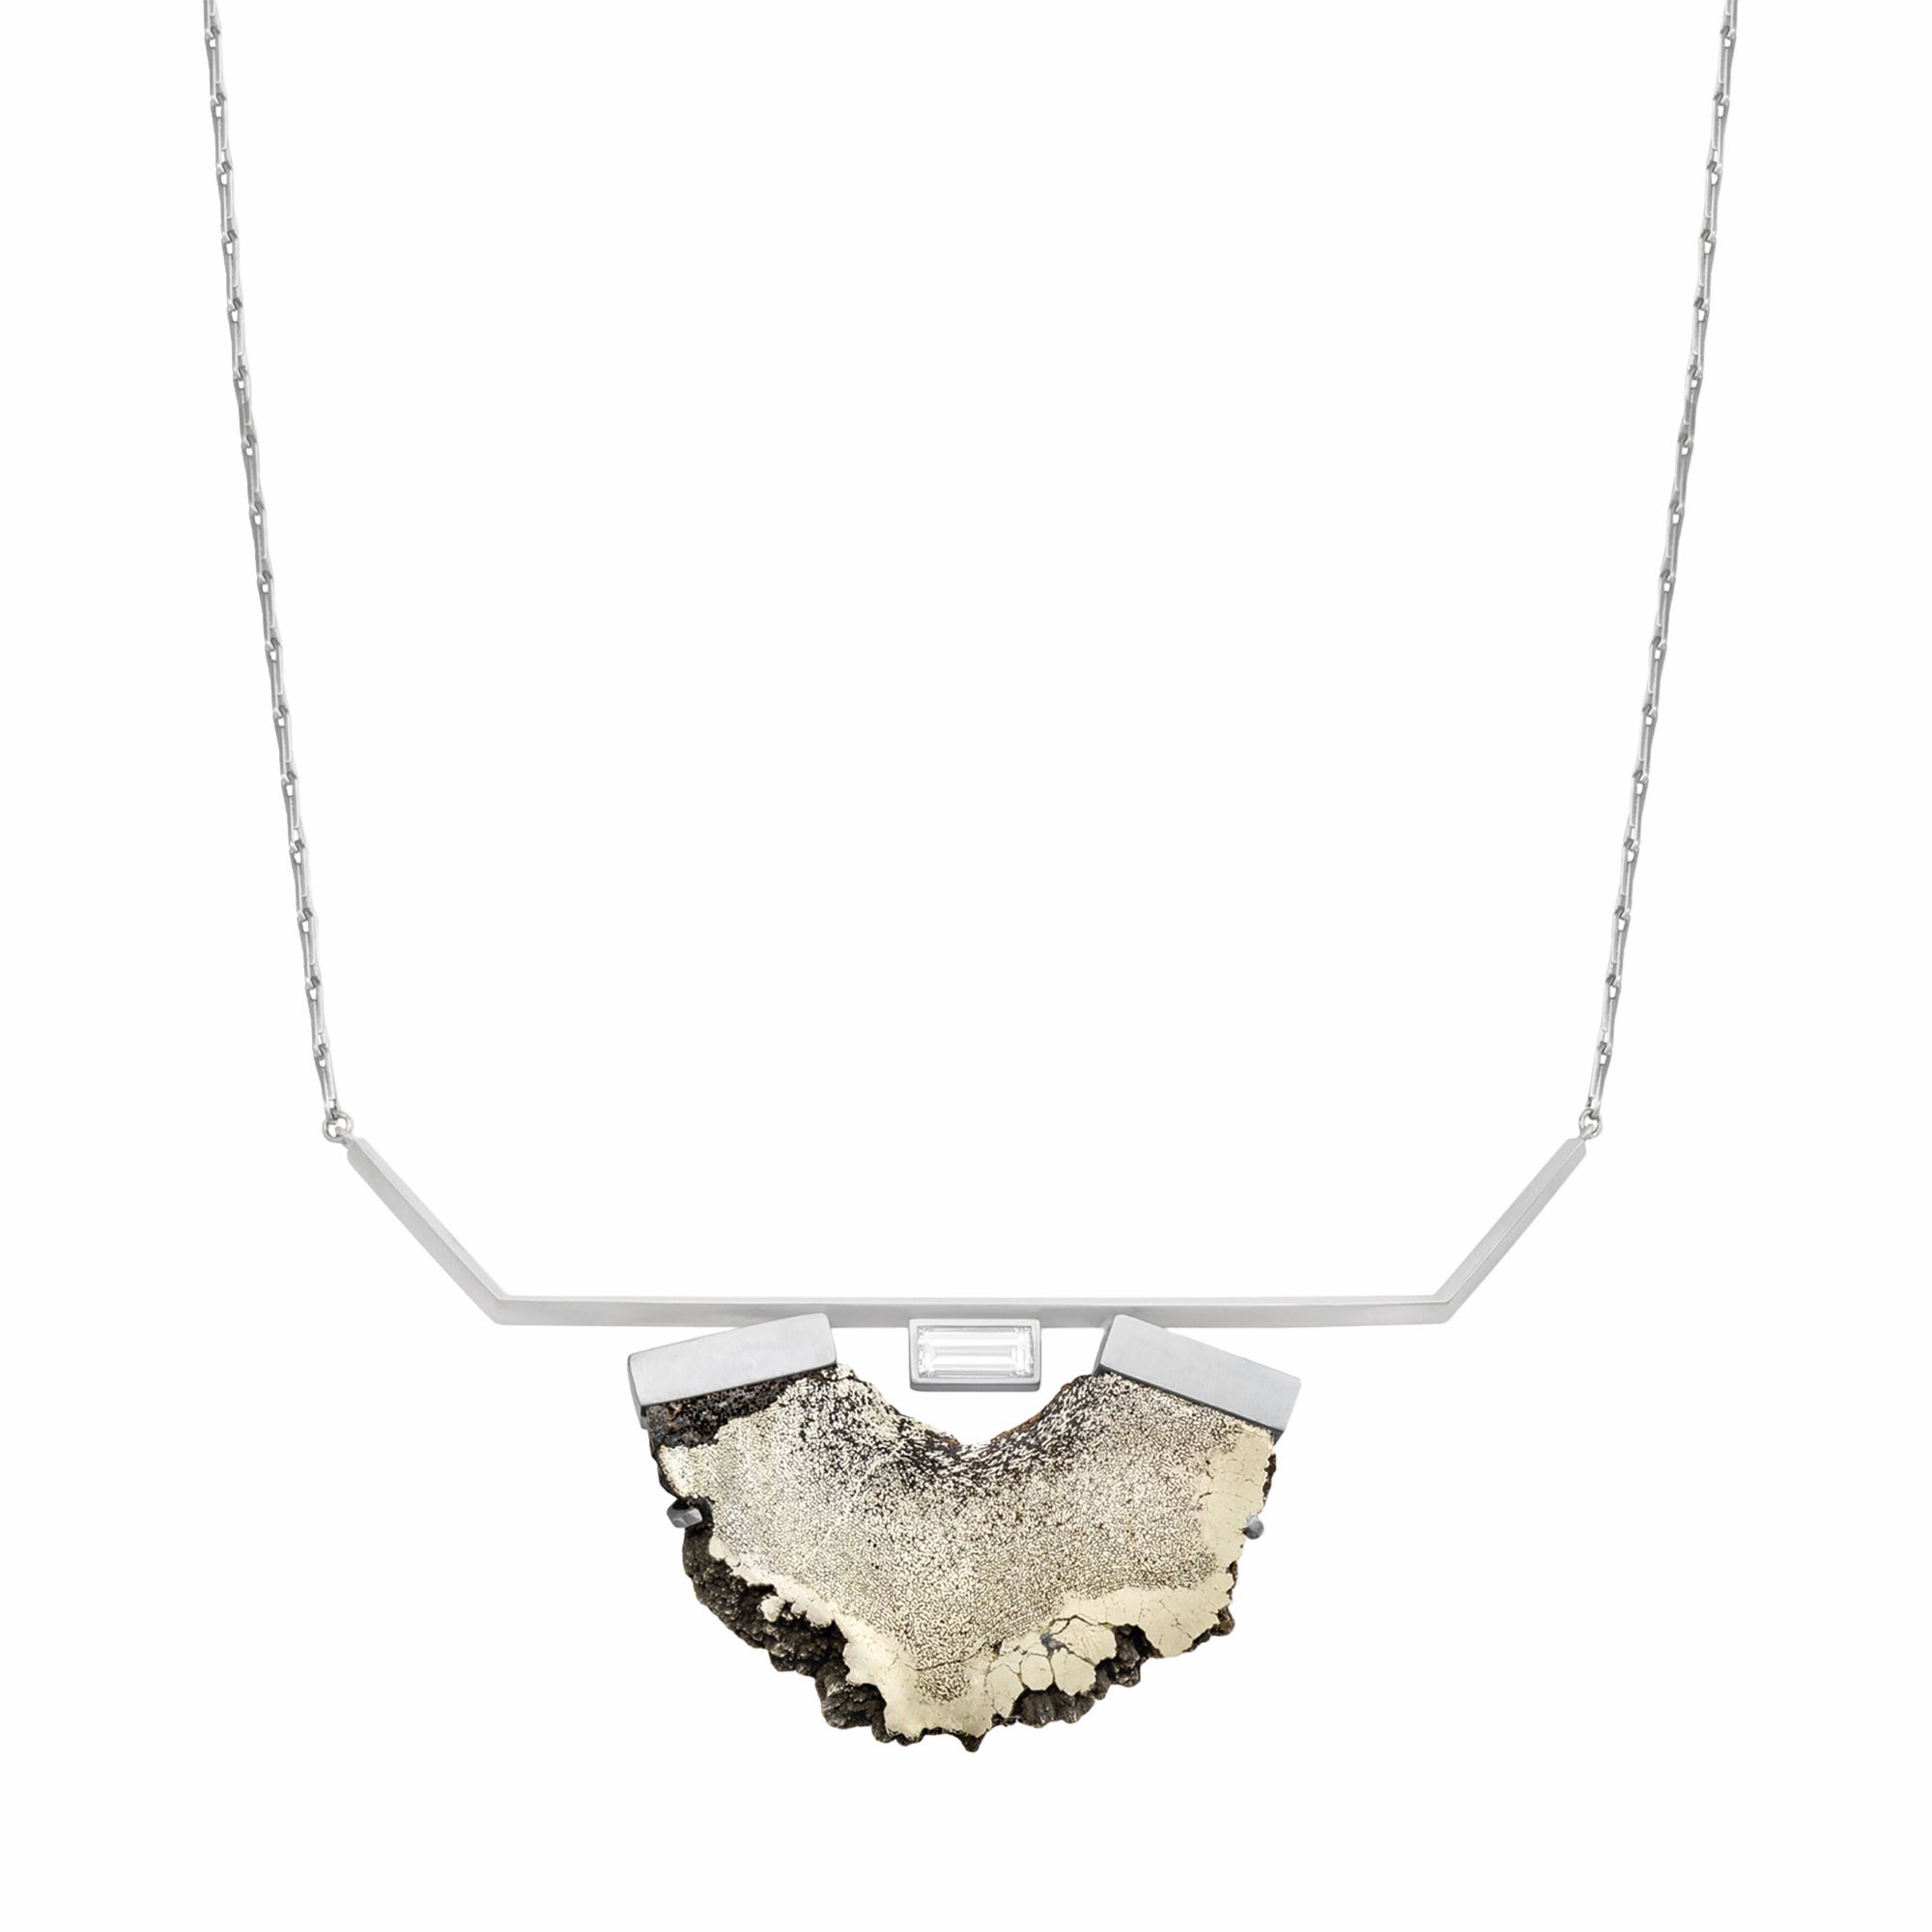 Monique Péan, Necklace, 2019. Diamond and pyritized dinosaur bone in recycled platinum. Image courtesy Monique Péan